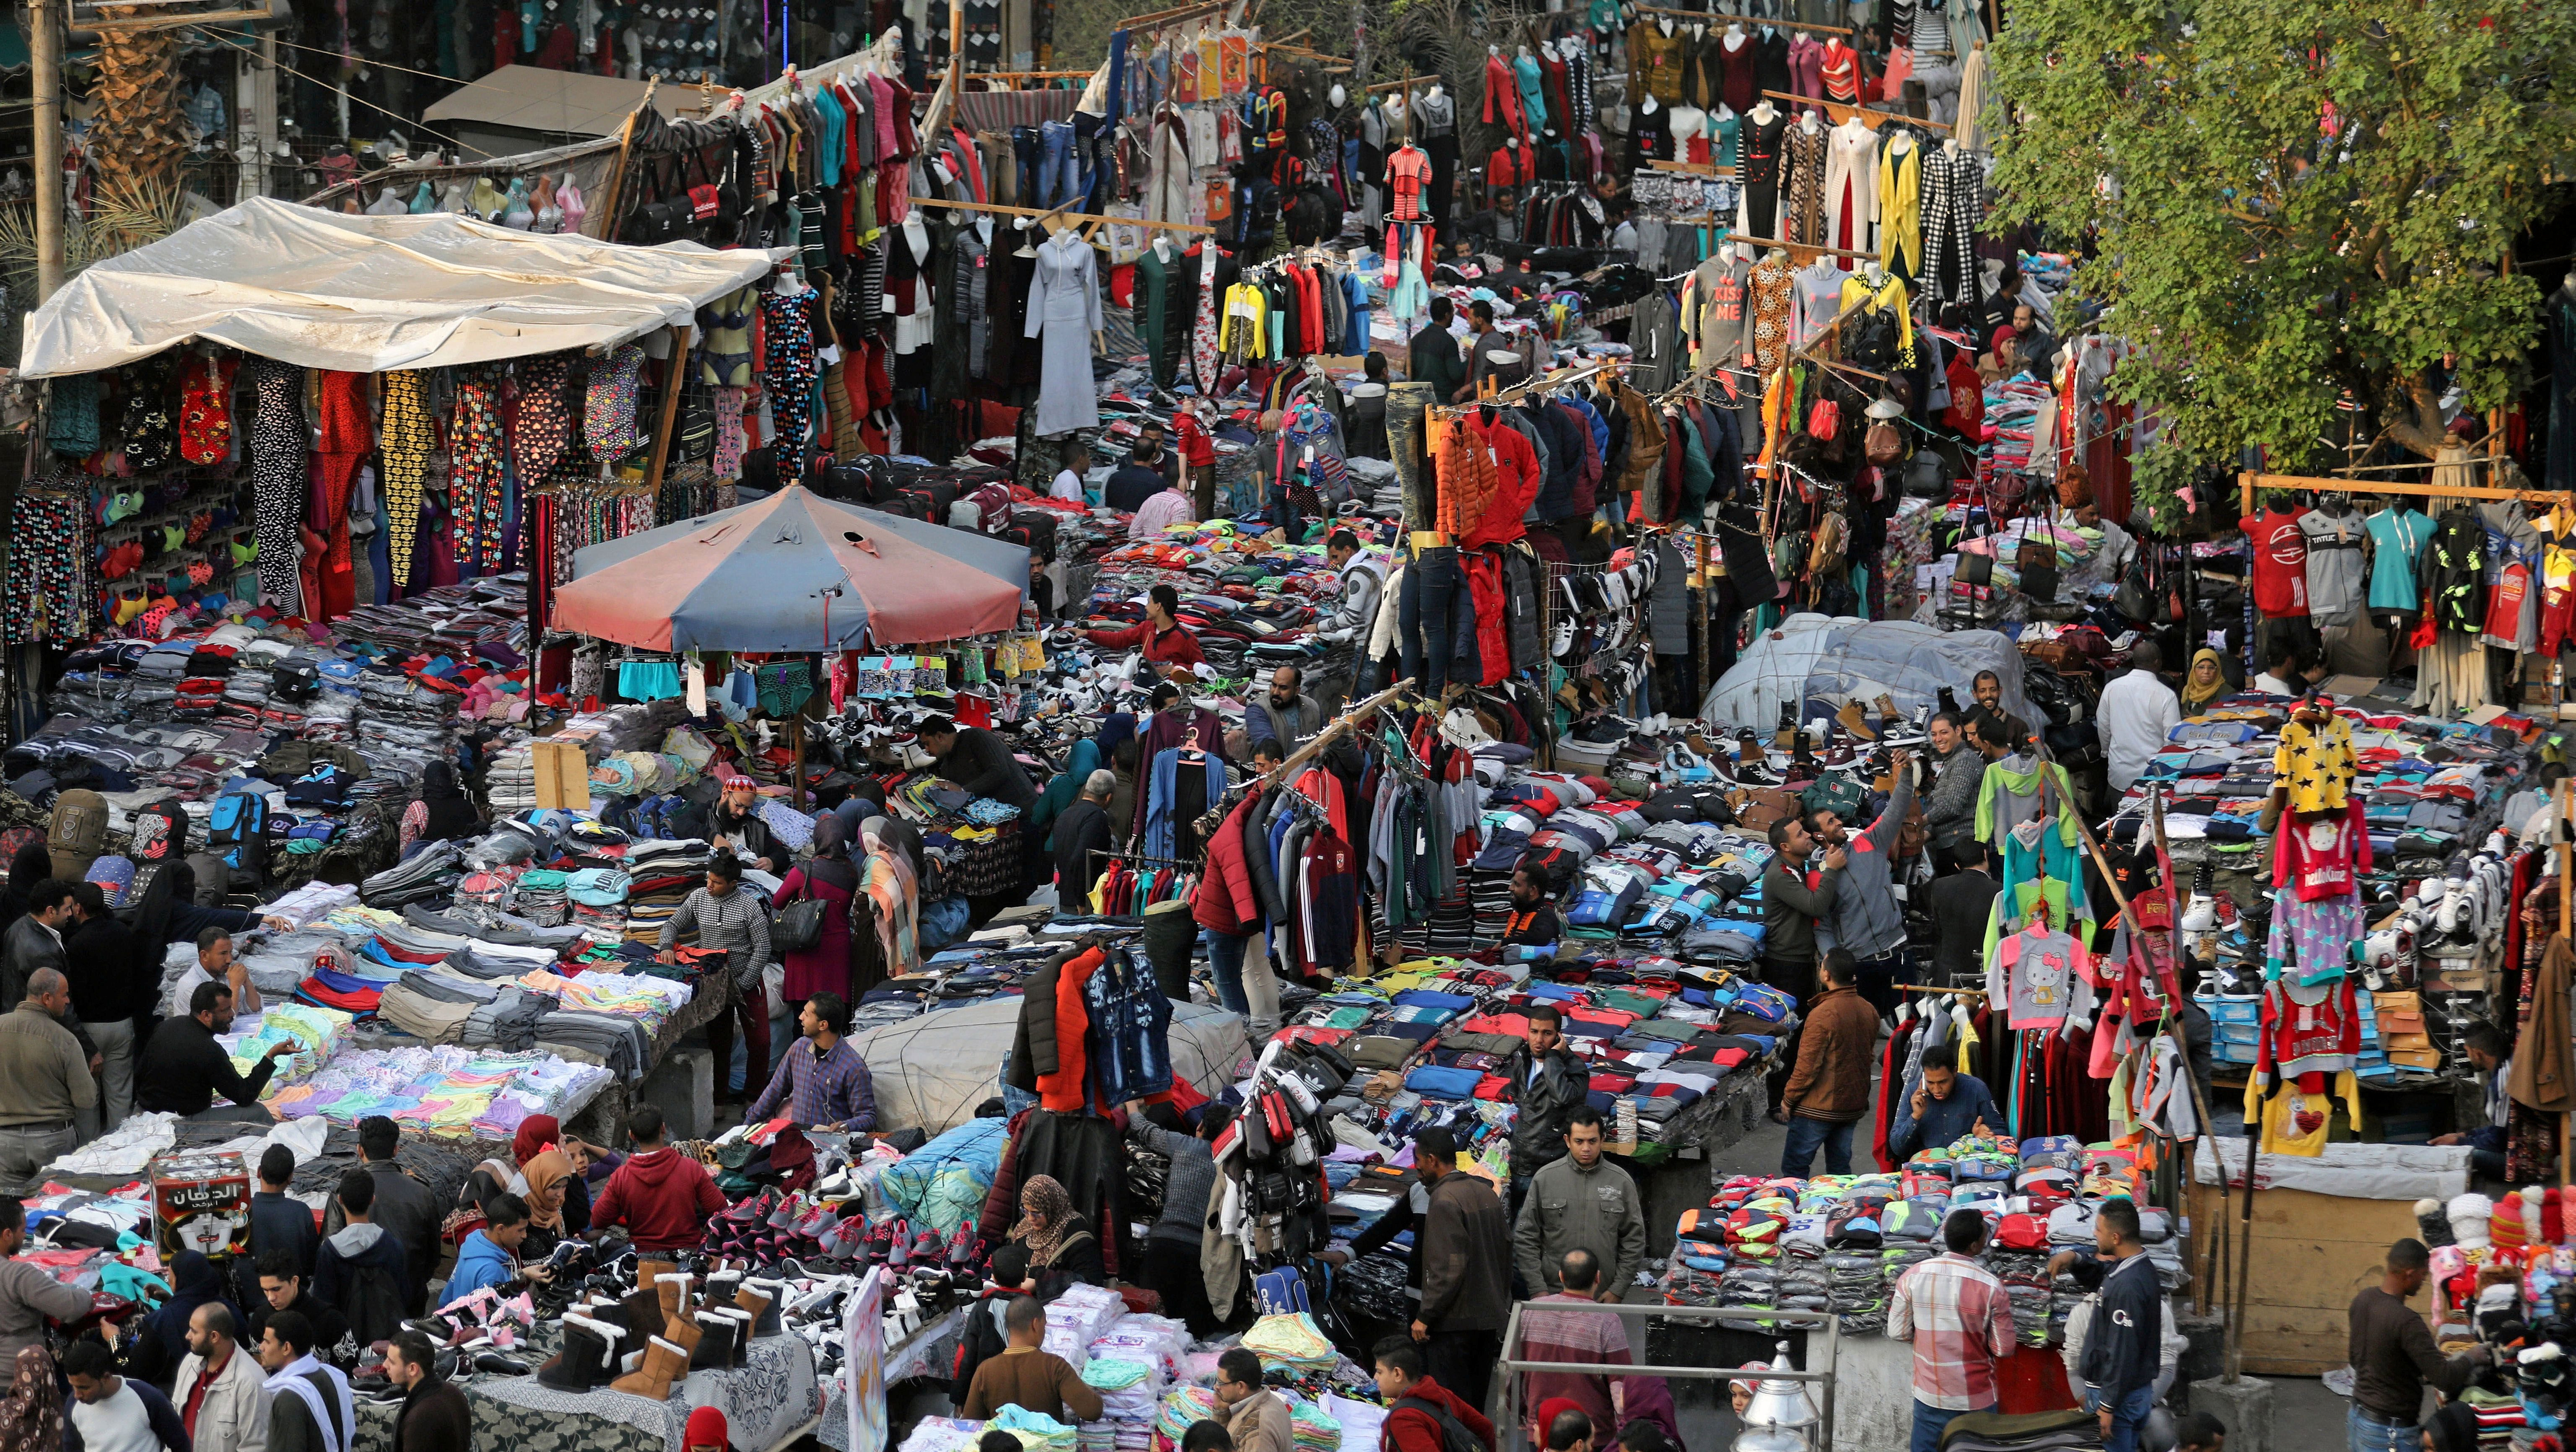 People shop at Al Ataba, a popular market in downtown Cairo, Egypt December 12, 2017.